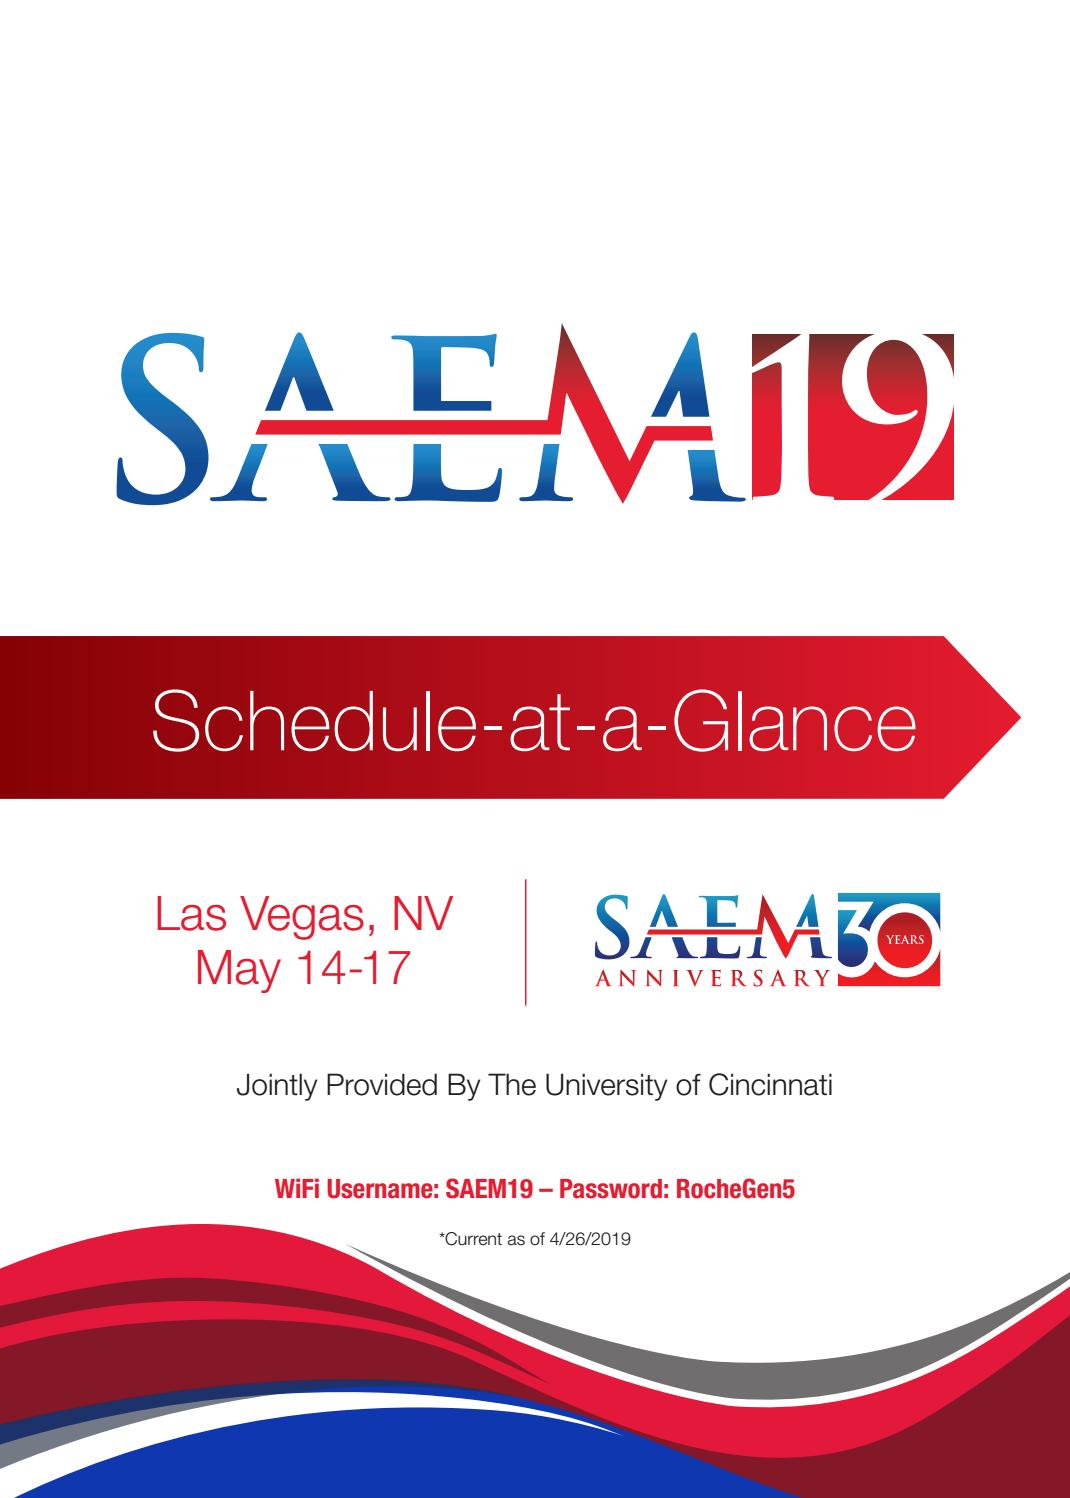 SAEM19 Schedule at a Glance by Society for Academic